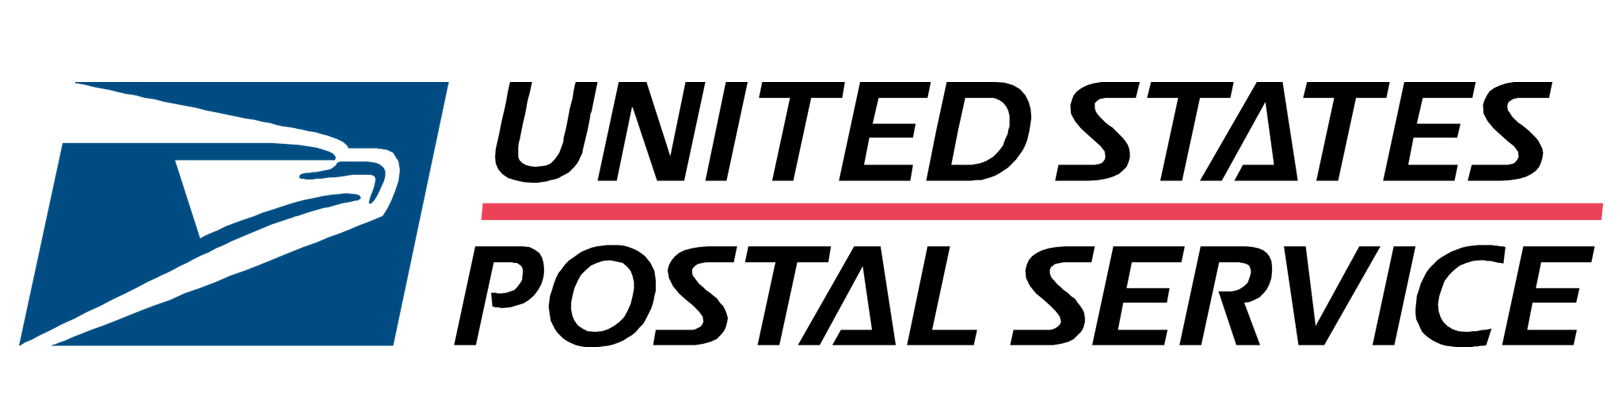 Us post office holidays 2016 post office holidays - Singapore post office tracking number ...